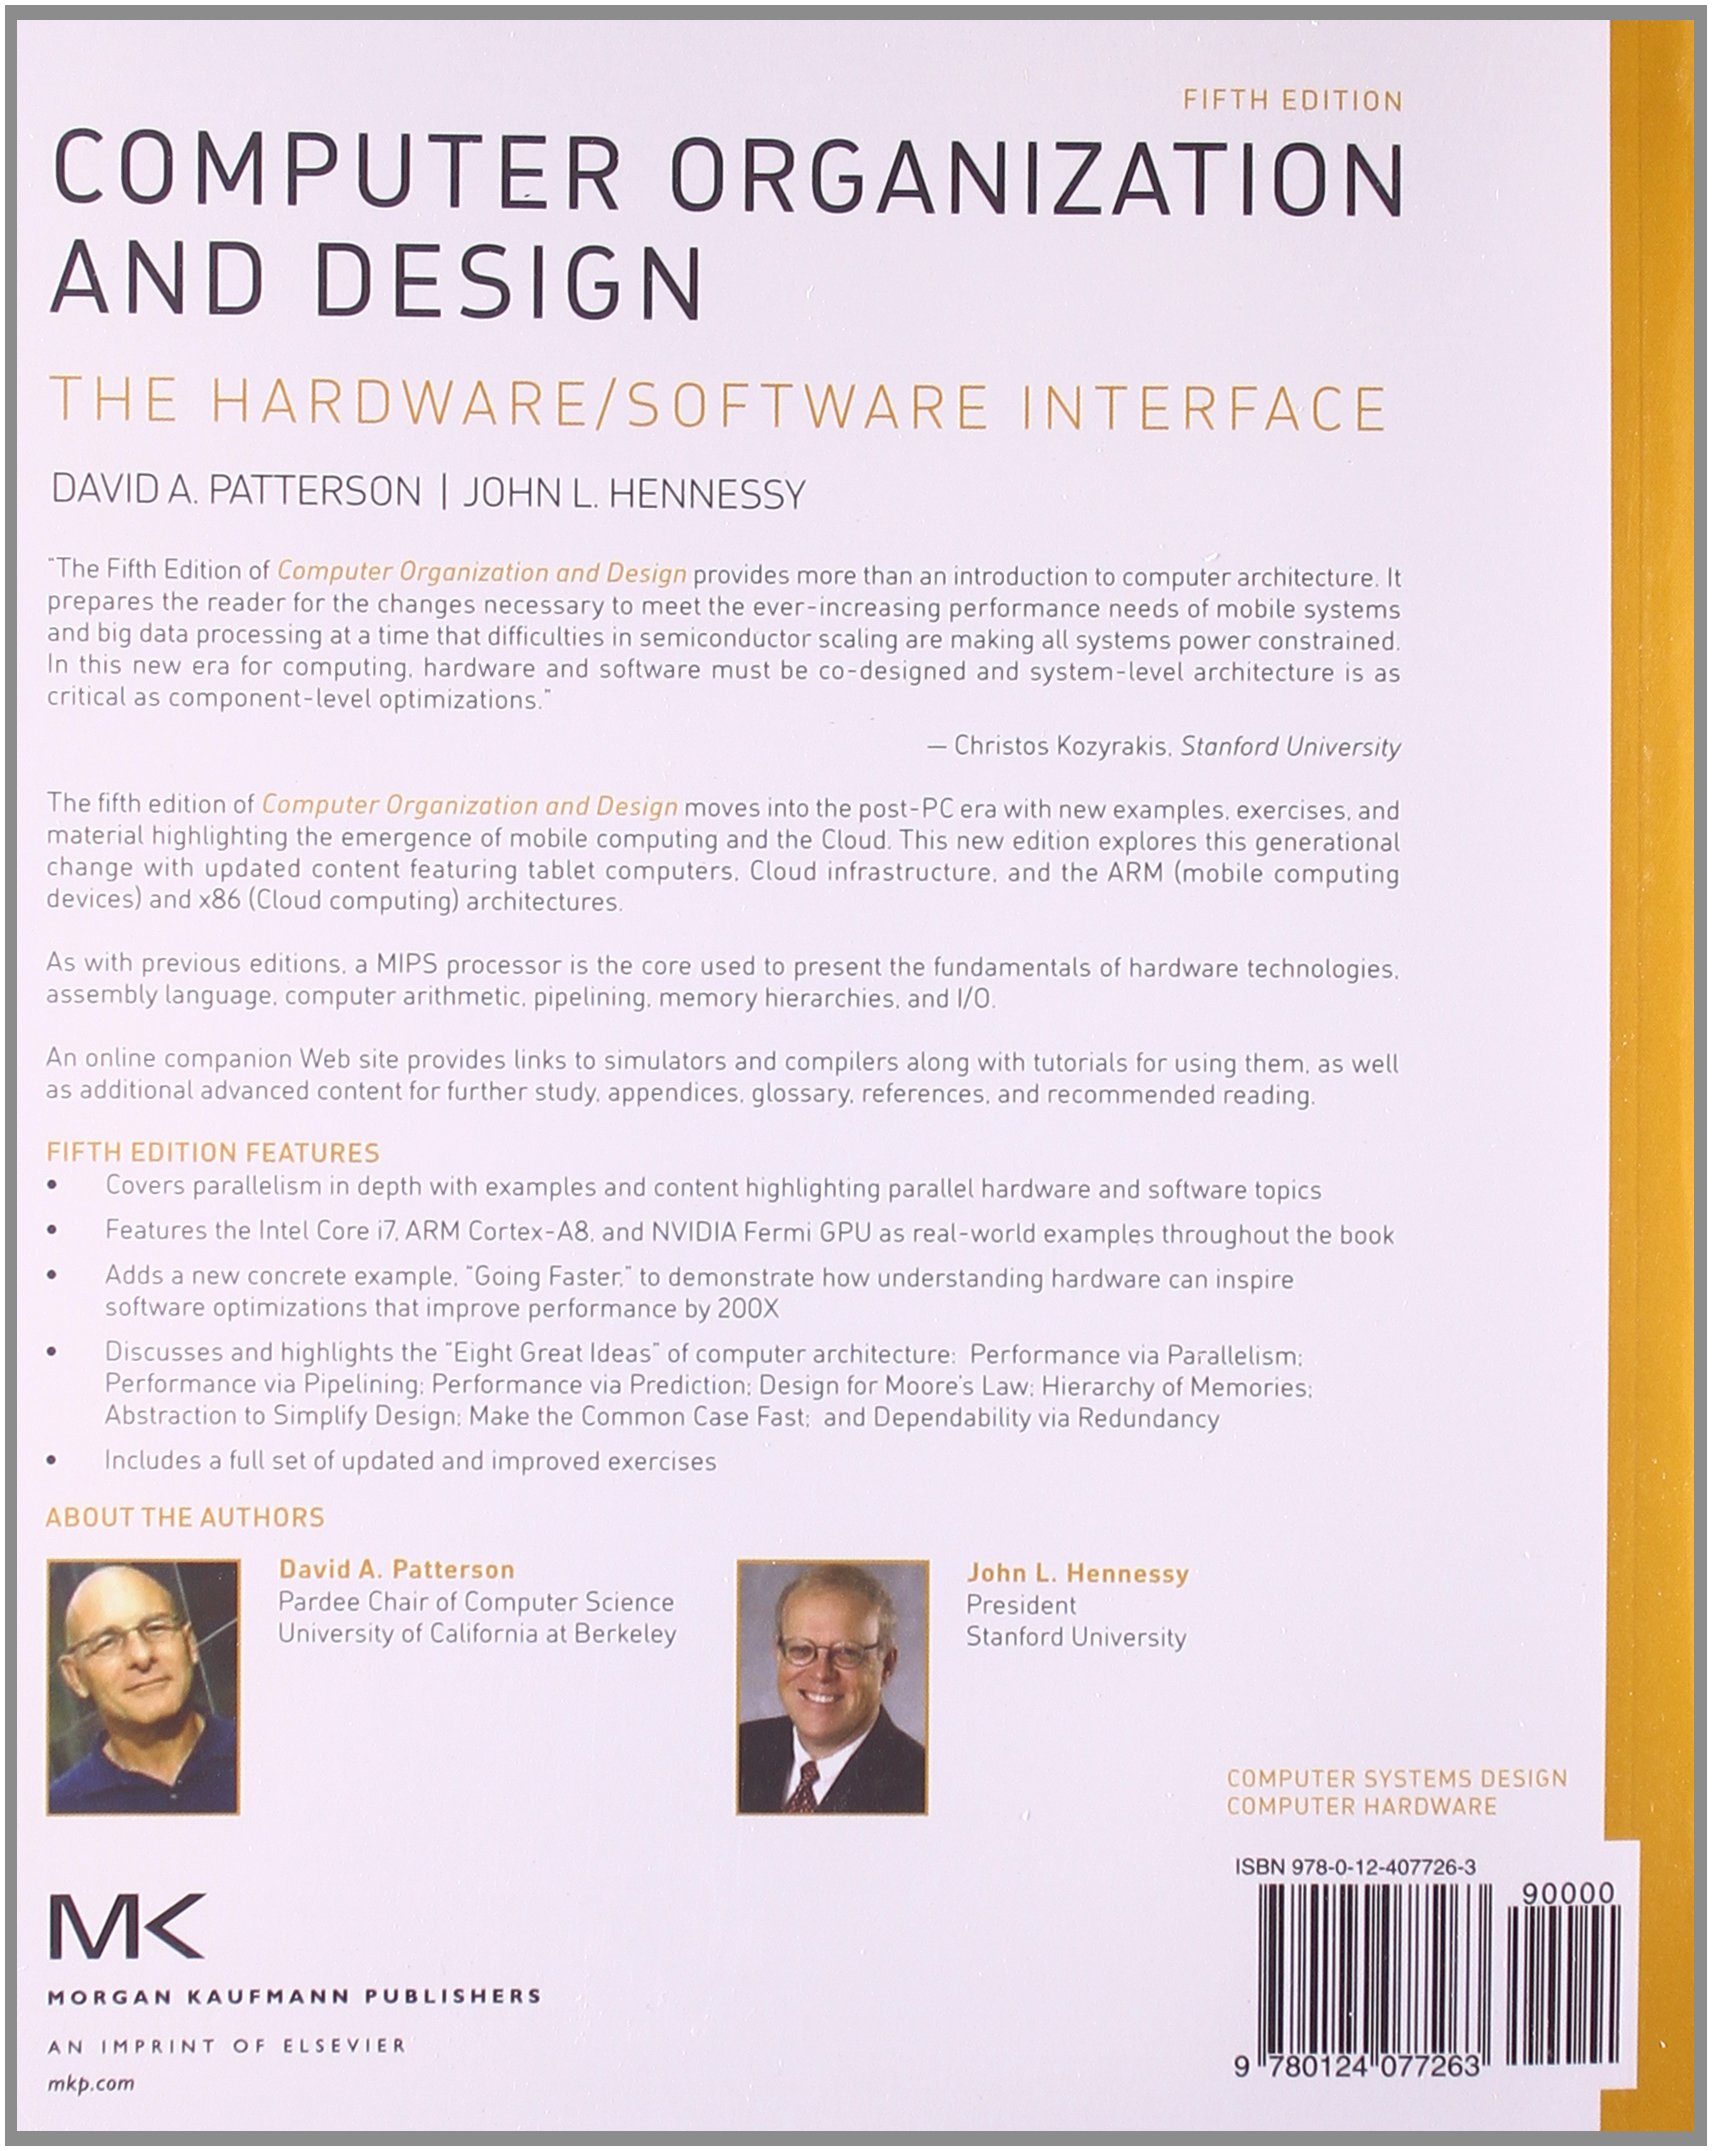 Computer organization and design mips edition the hardware computer organization and design mips edition the hardwaresoftware interface david a patterson john l hennessy 9780124077263 books amazon fandeluxe Images